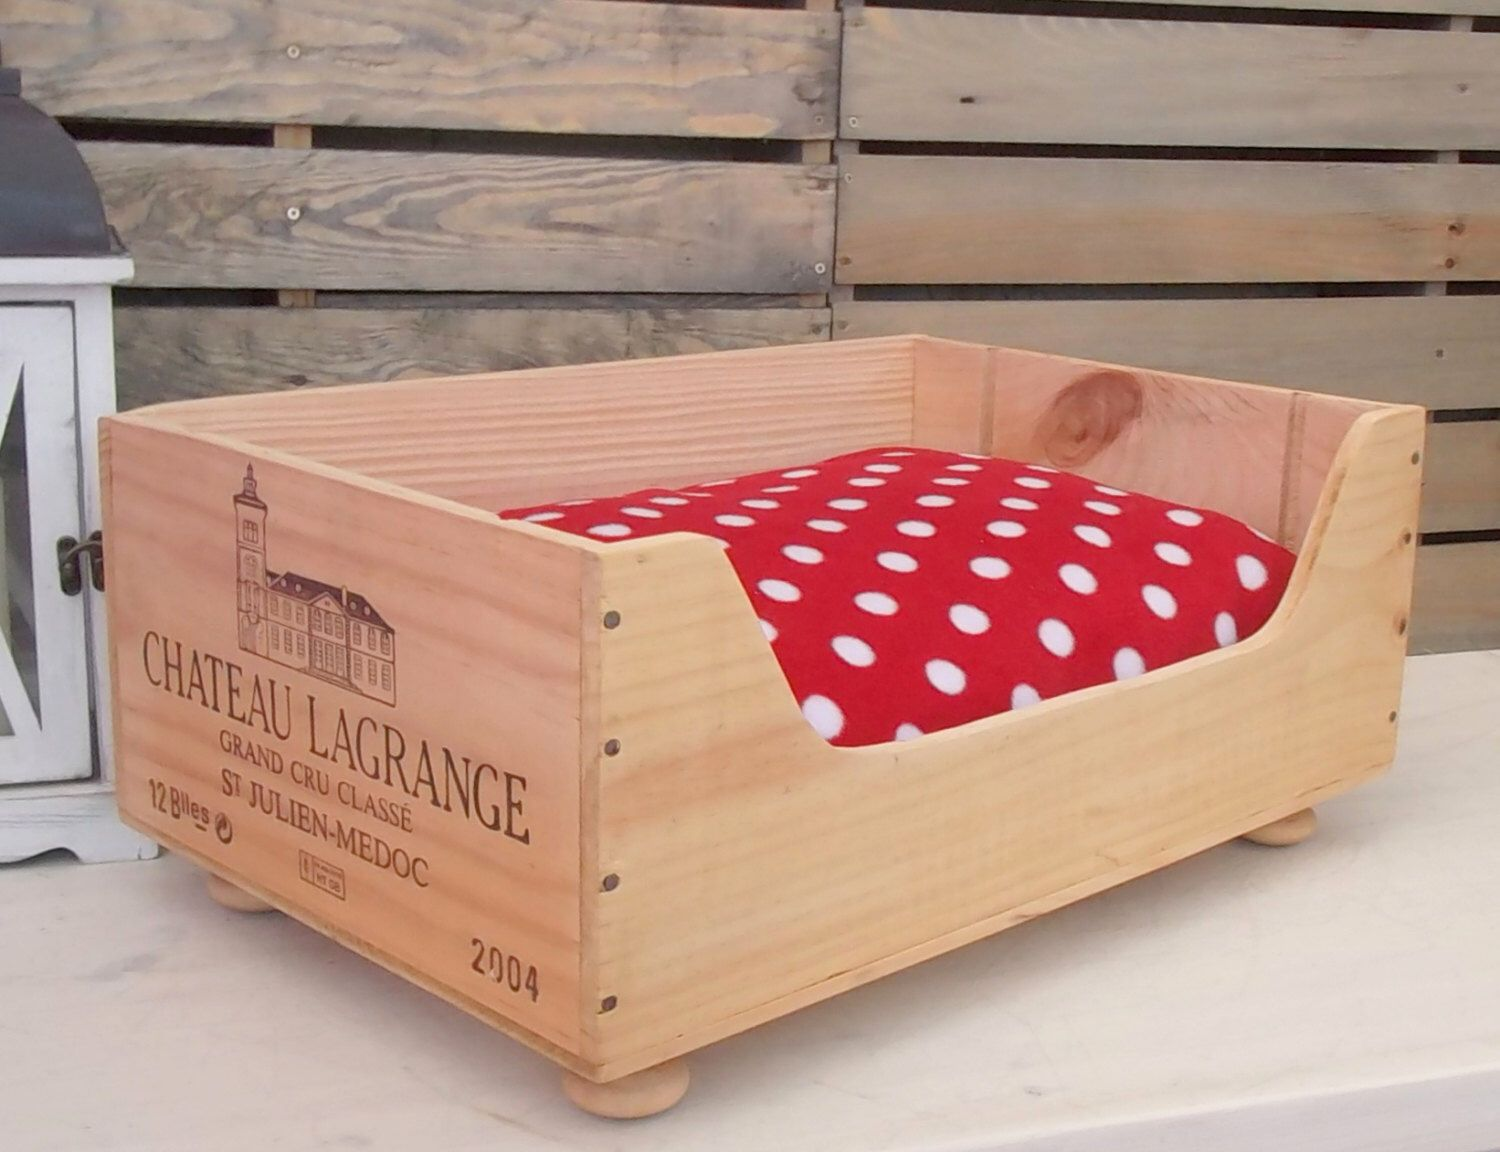 Cat Bed Chateau Lagrange Original French Wine Box Pet Wooden Crate French Style Country Rustic Home Pet Bed By Baxterandsno With Images Wooden Crate Cat Bed